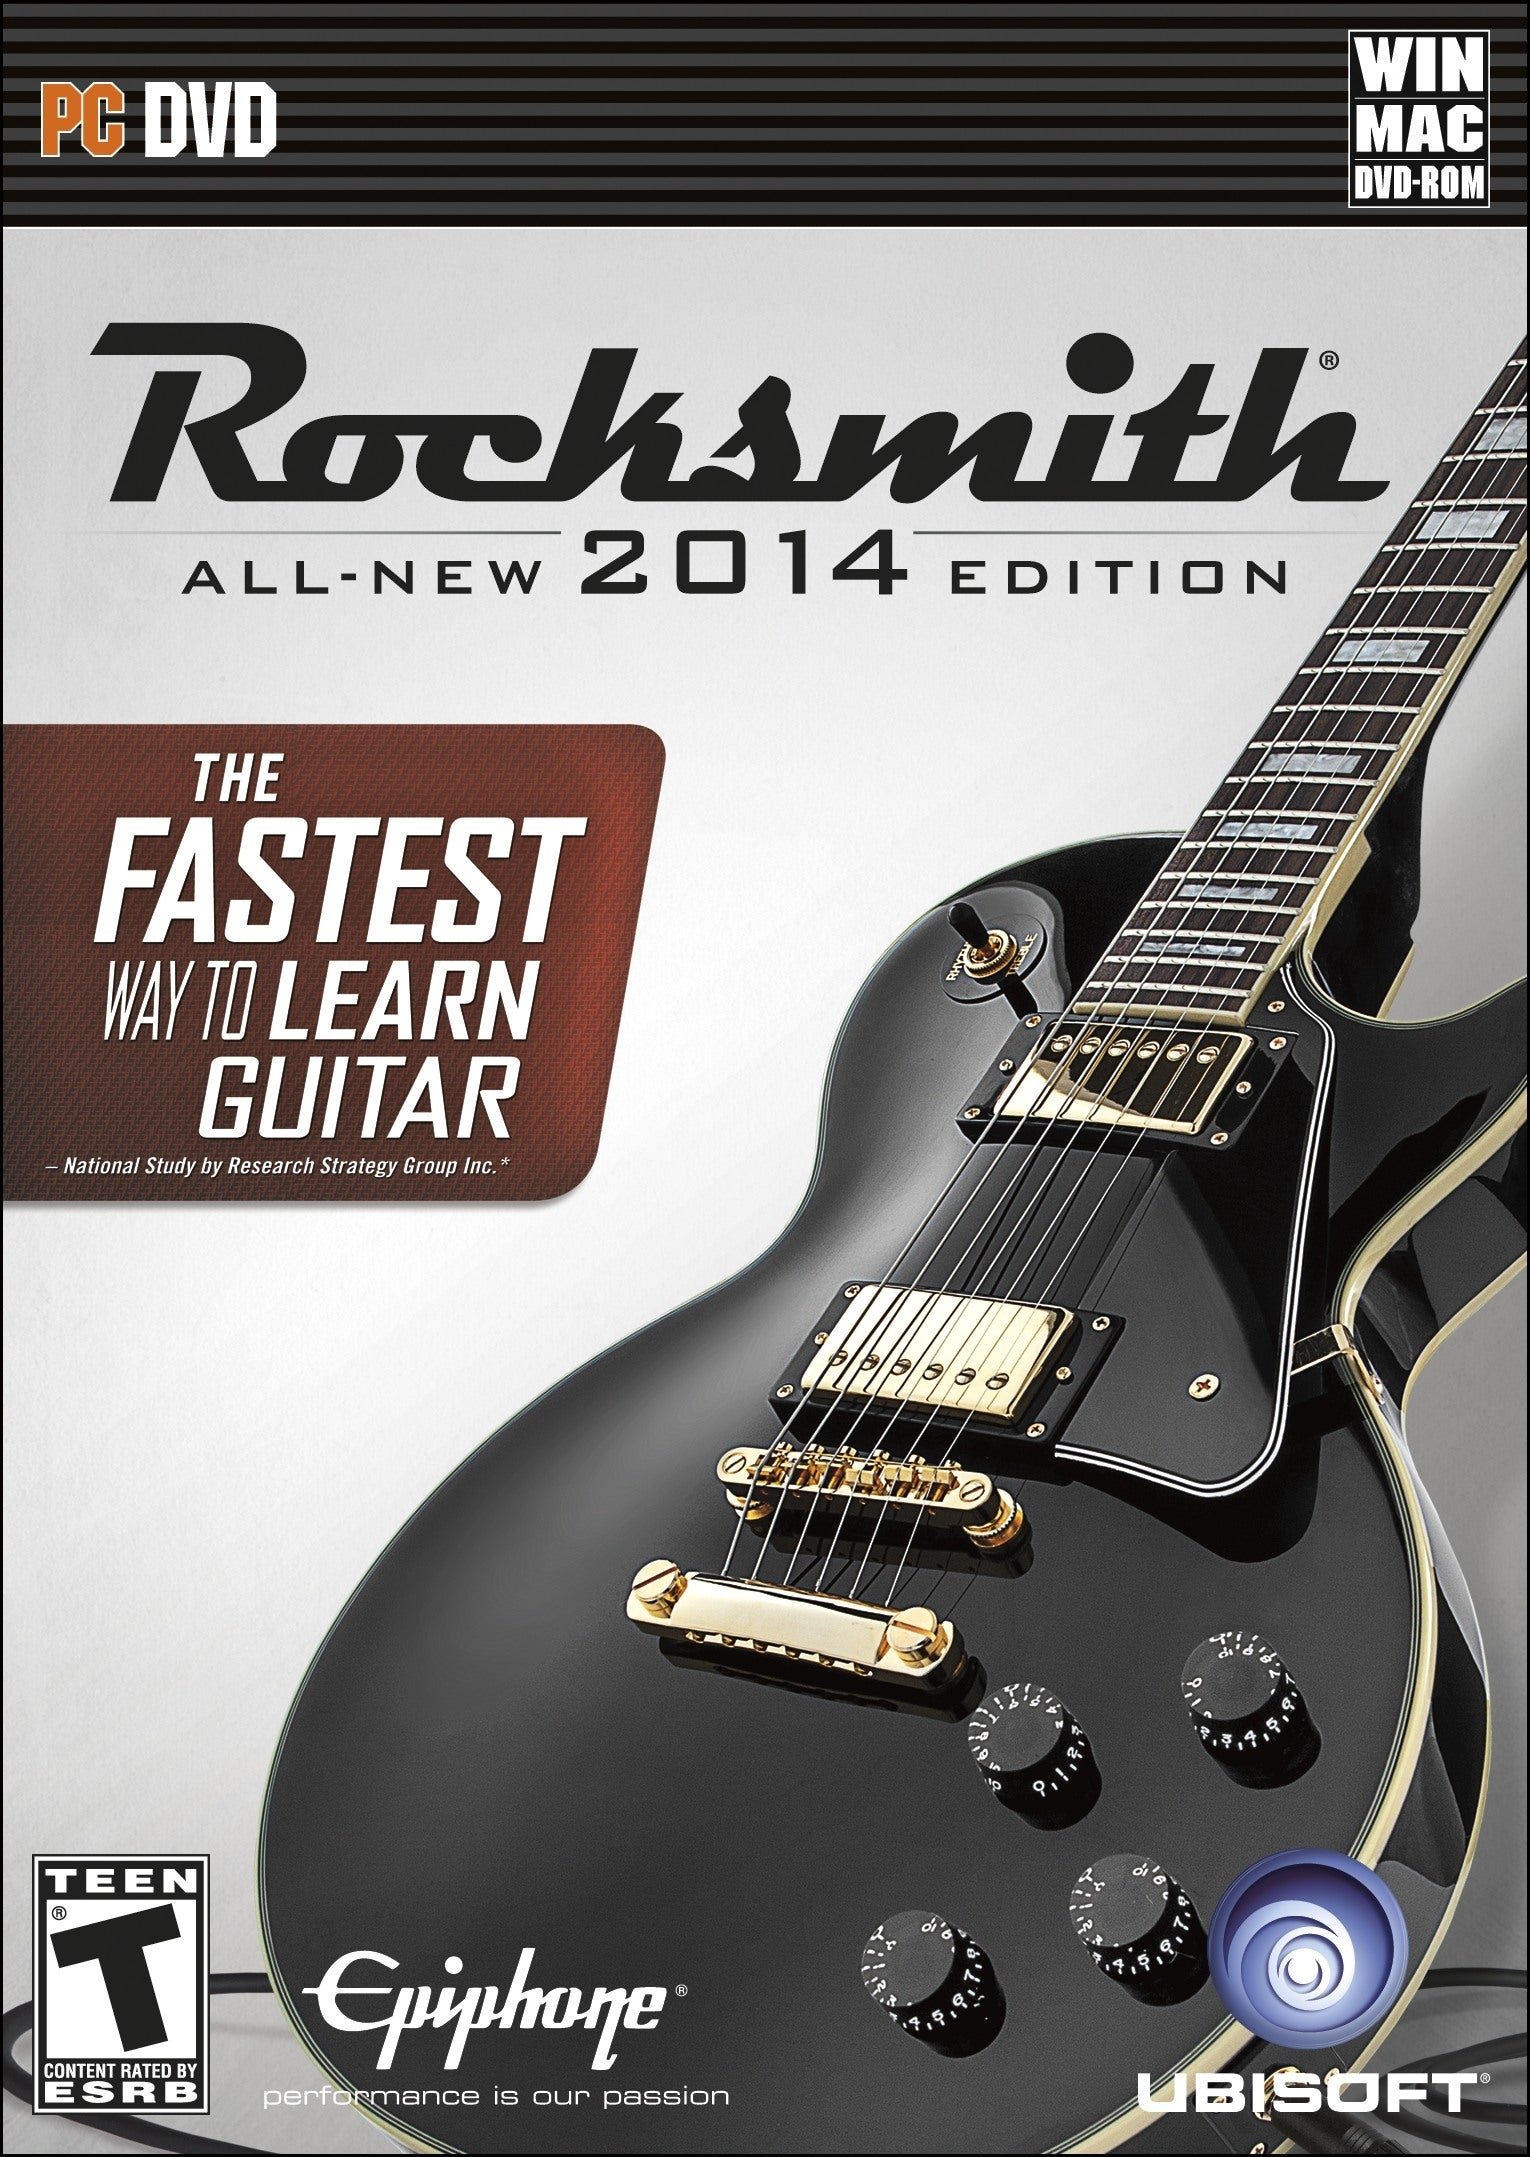 Rocksmith 2014 Review IGN